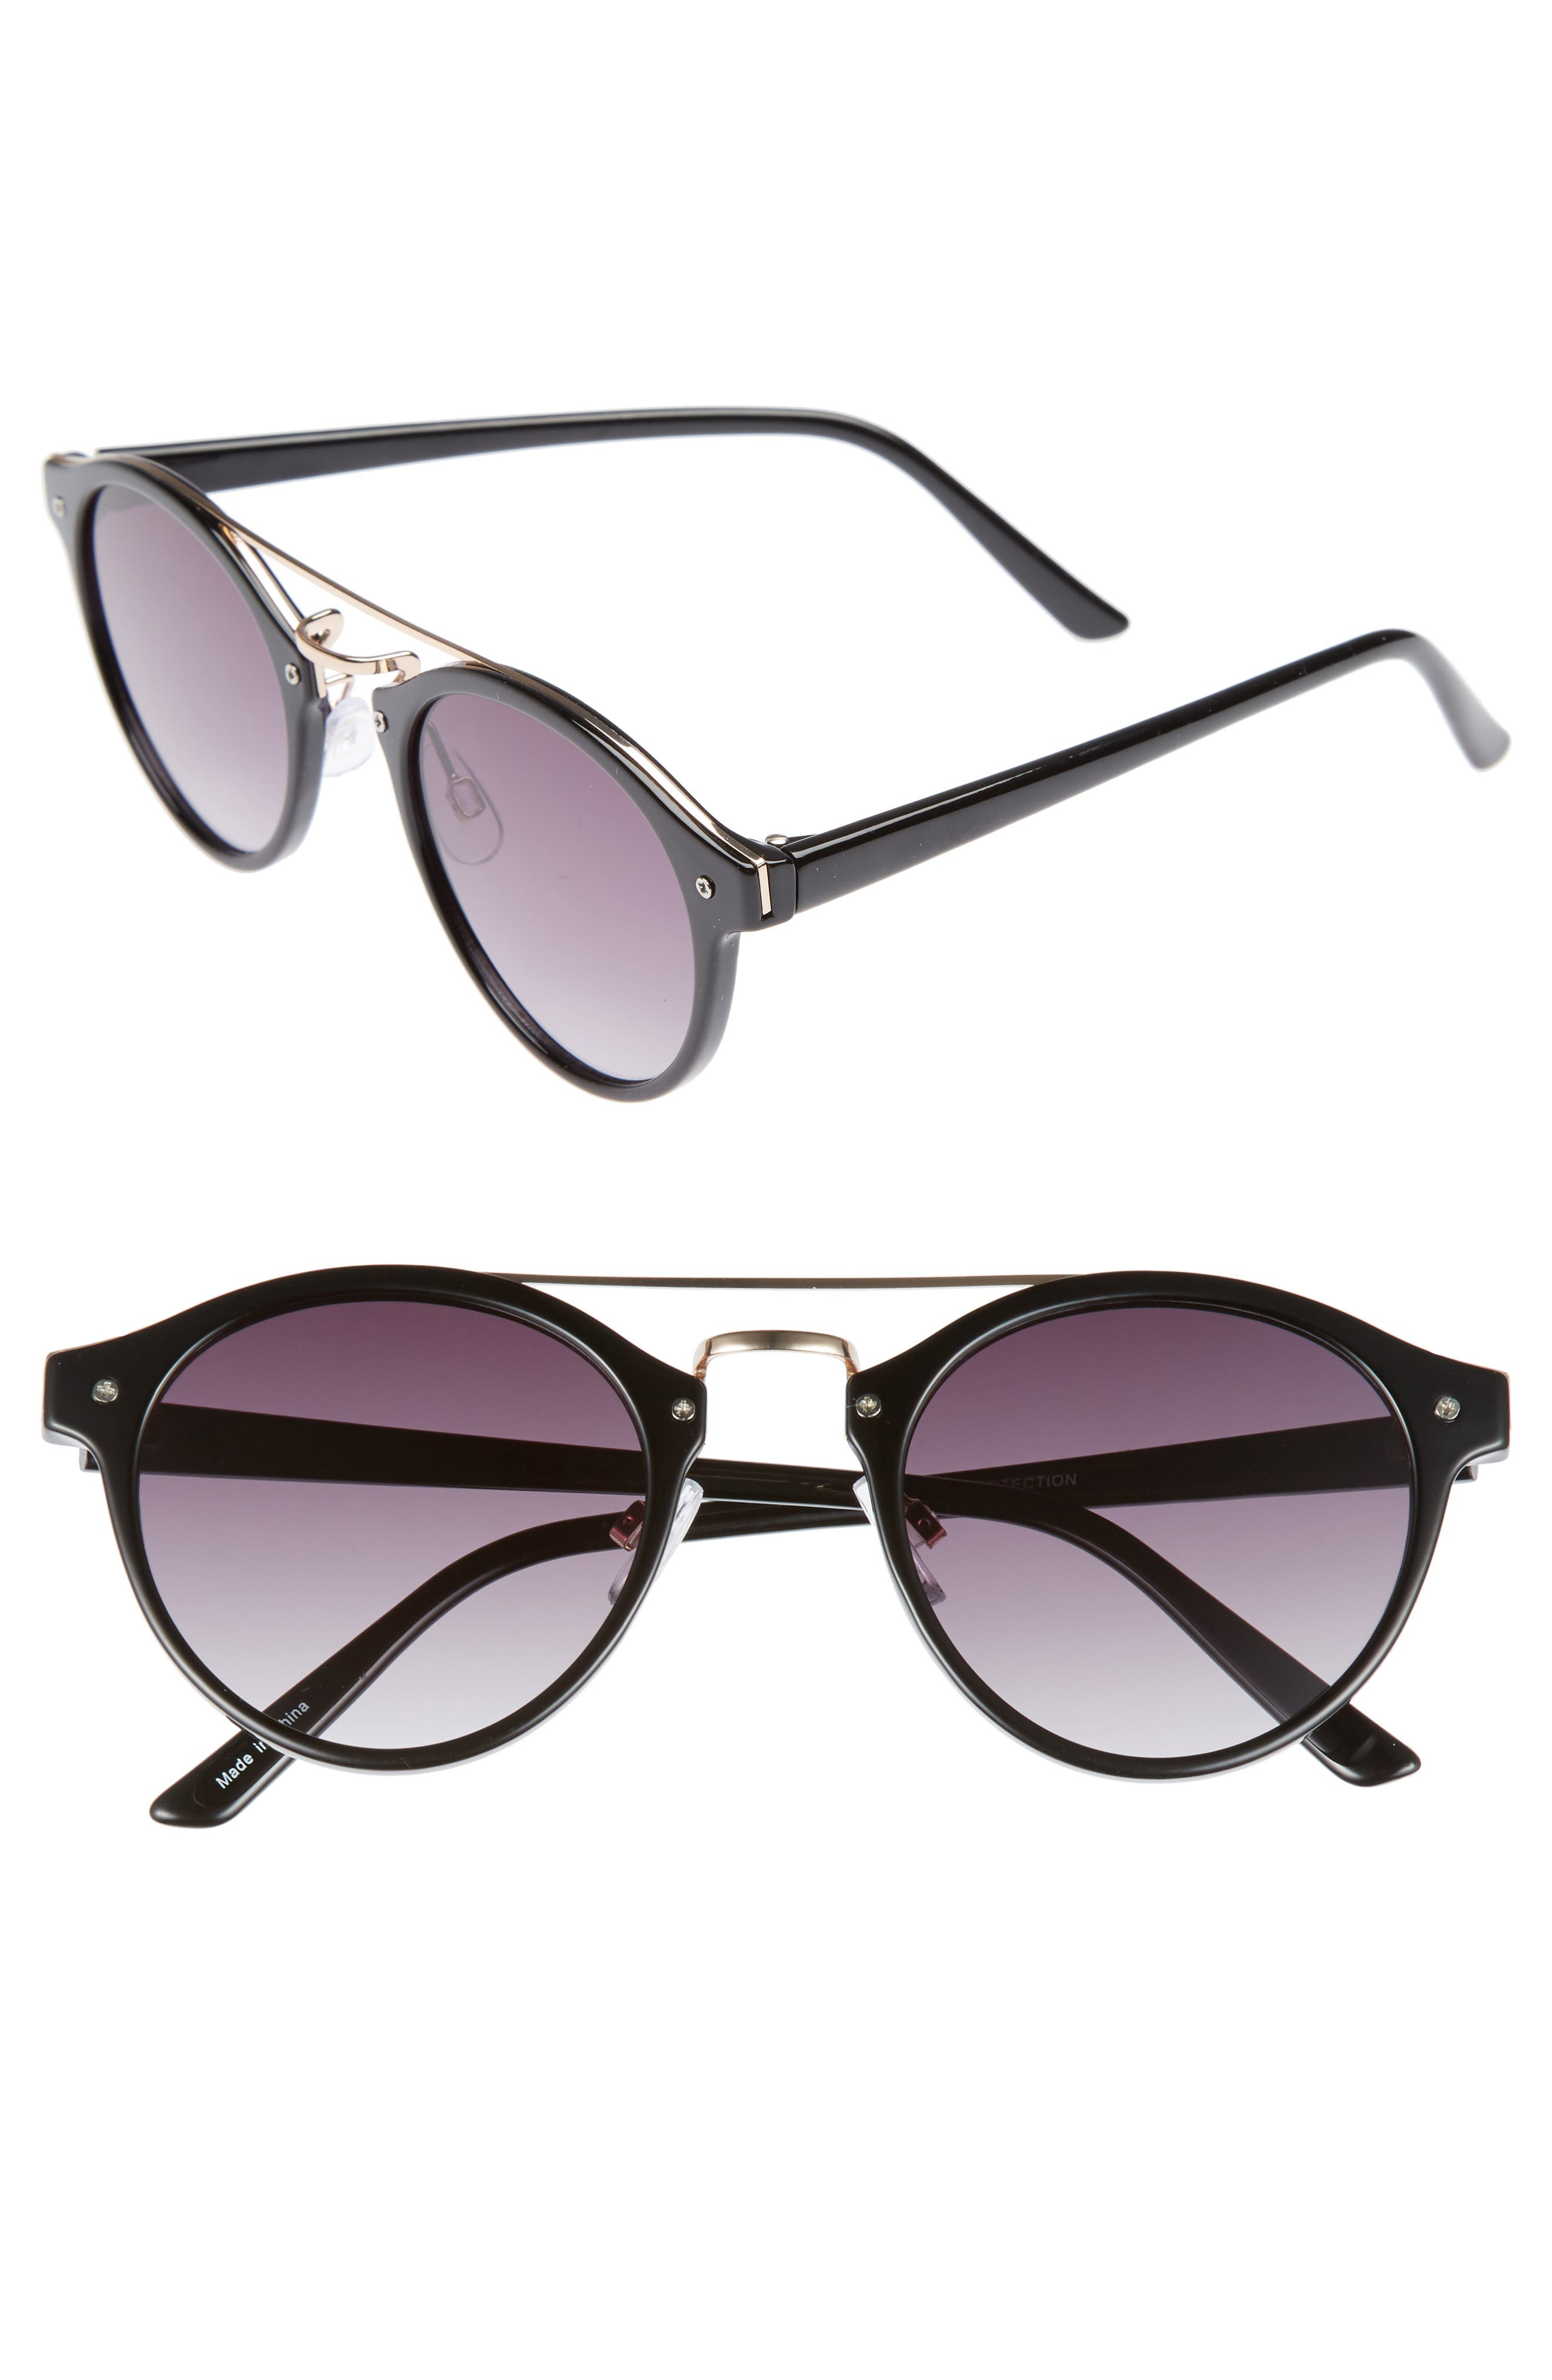 45mm Round Sunglasses,                         Main,                         color, 001